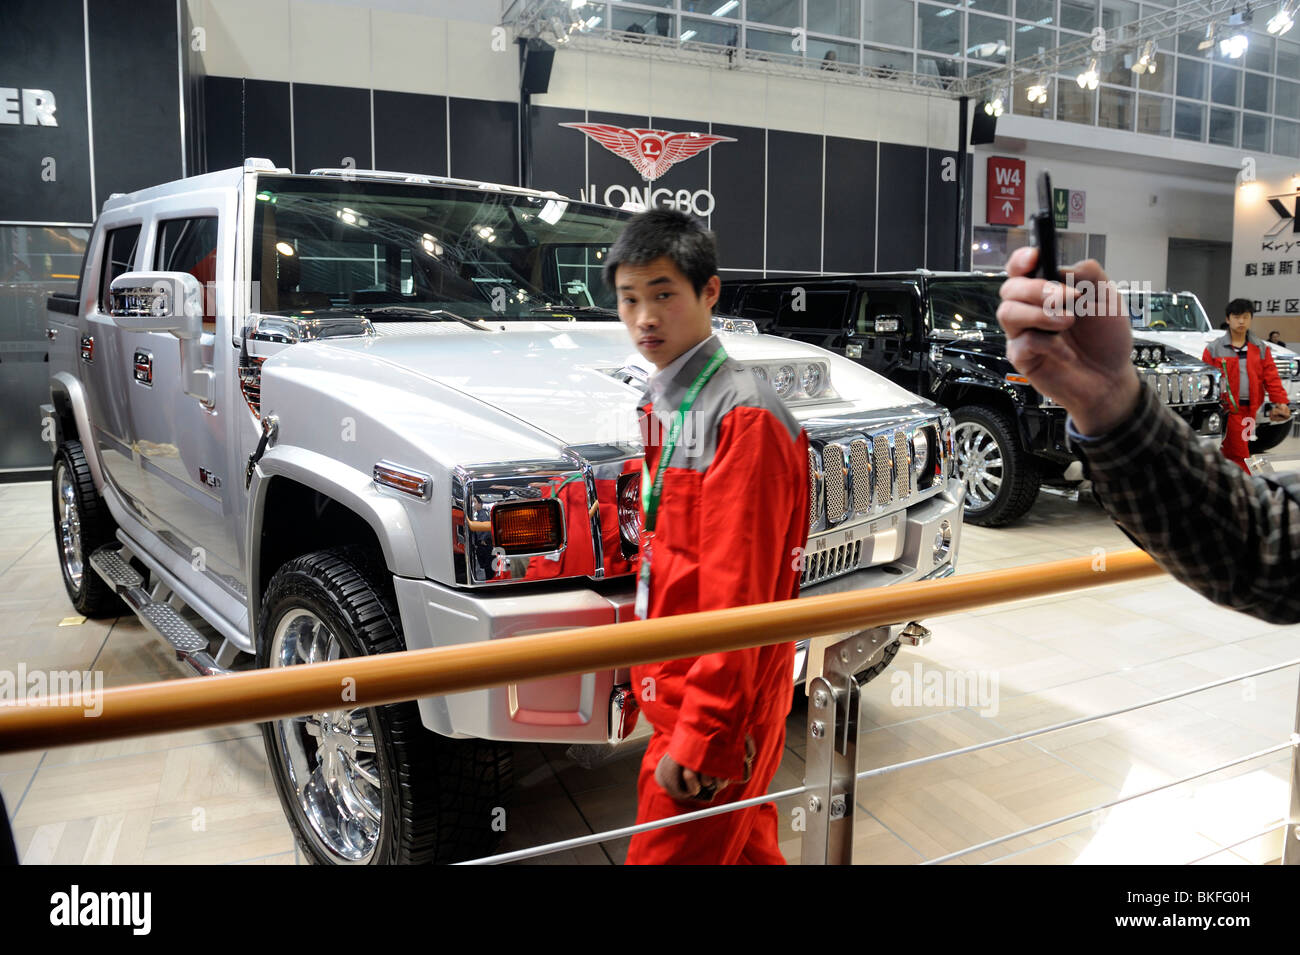 Longbo customized Hummer H2 at the Beiijng Auto Show. 23-Apr-2010 - Stock Image